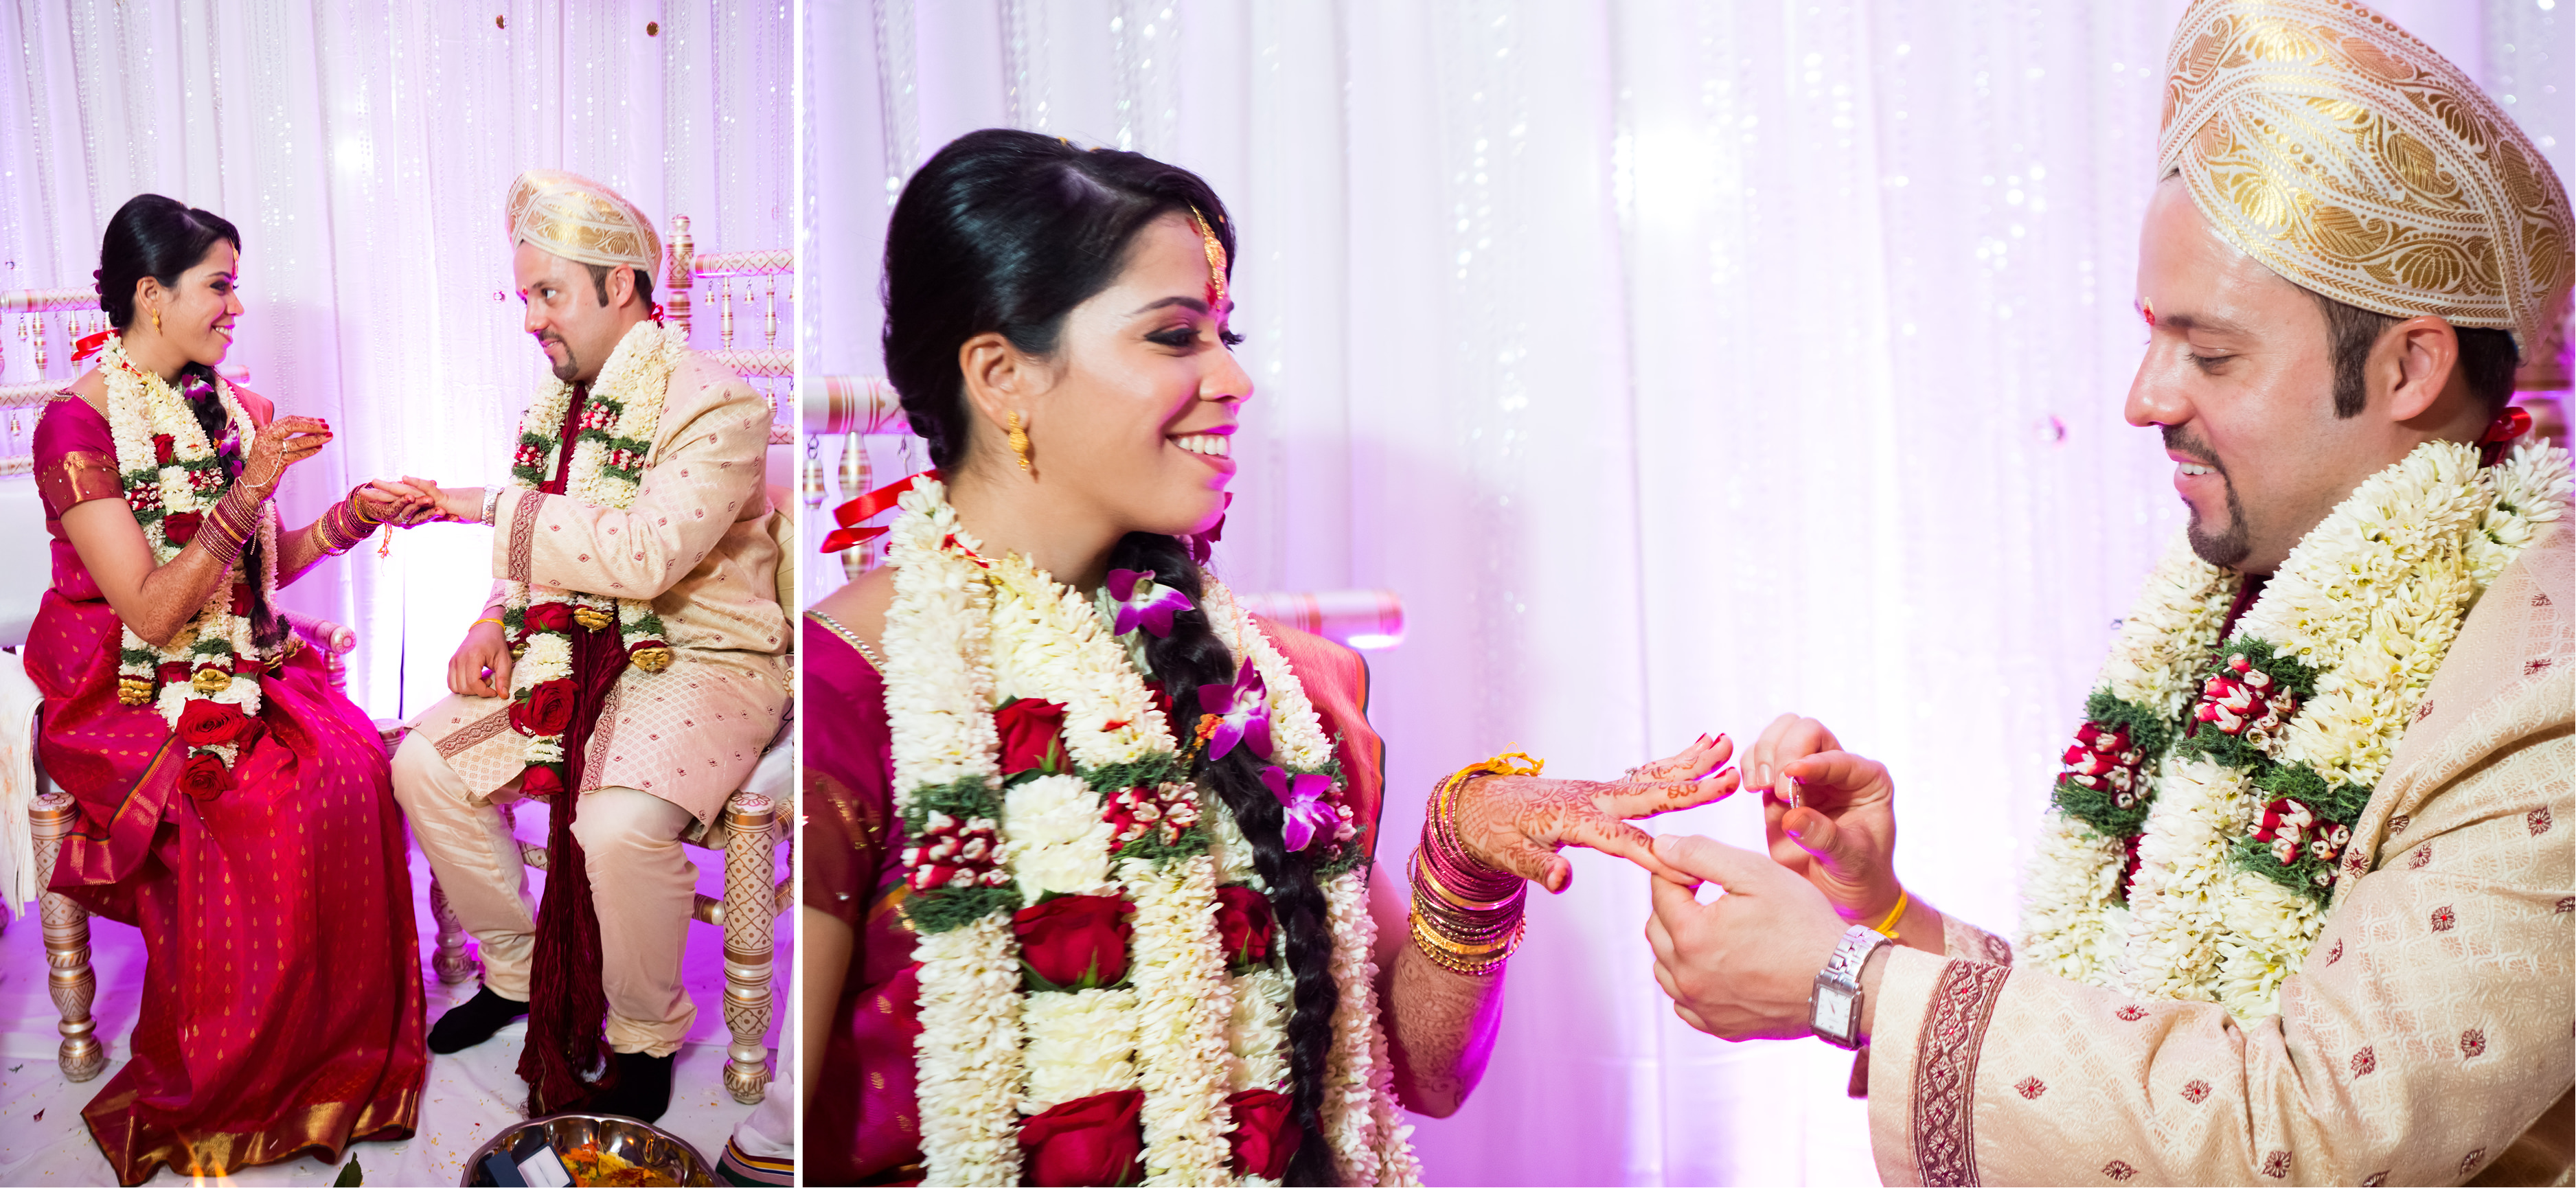 Emma_cleary_photography Indian Wedding20